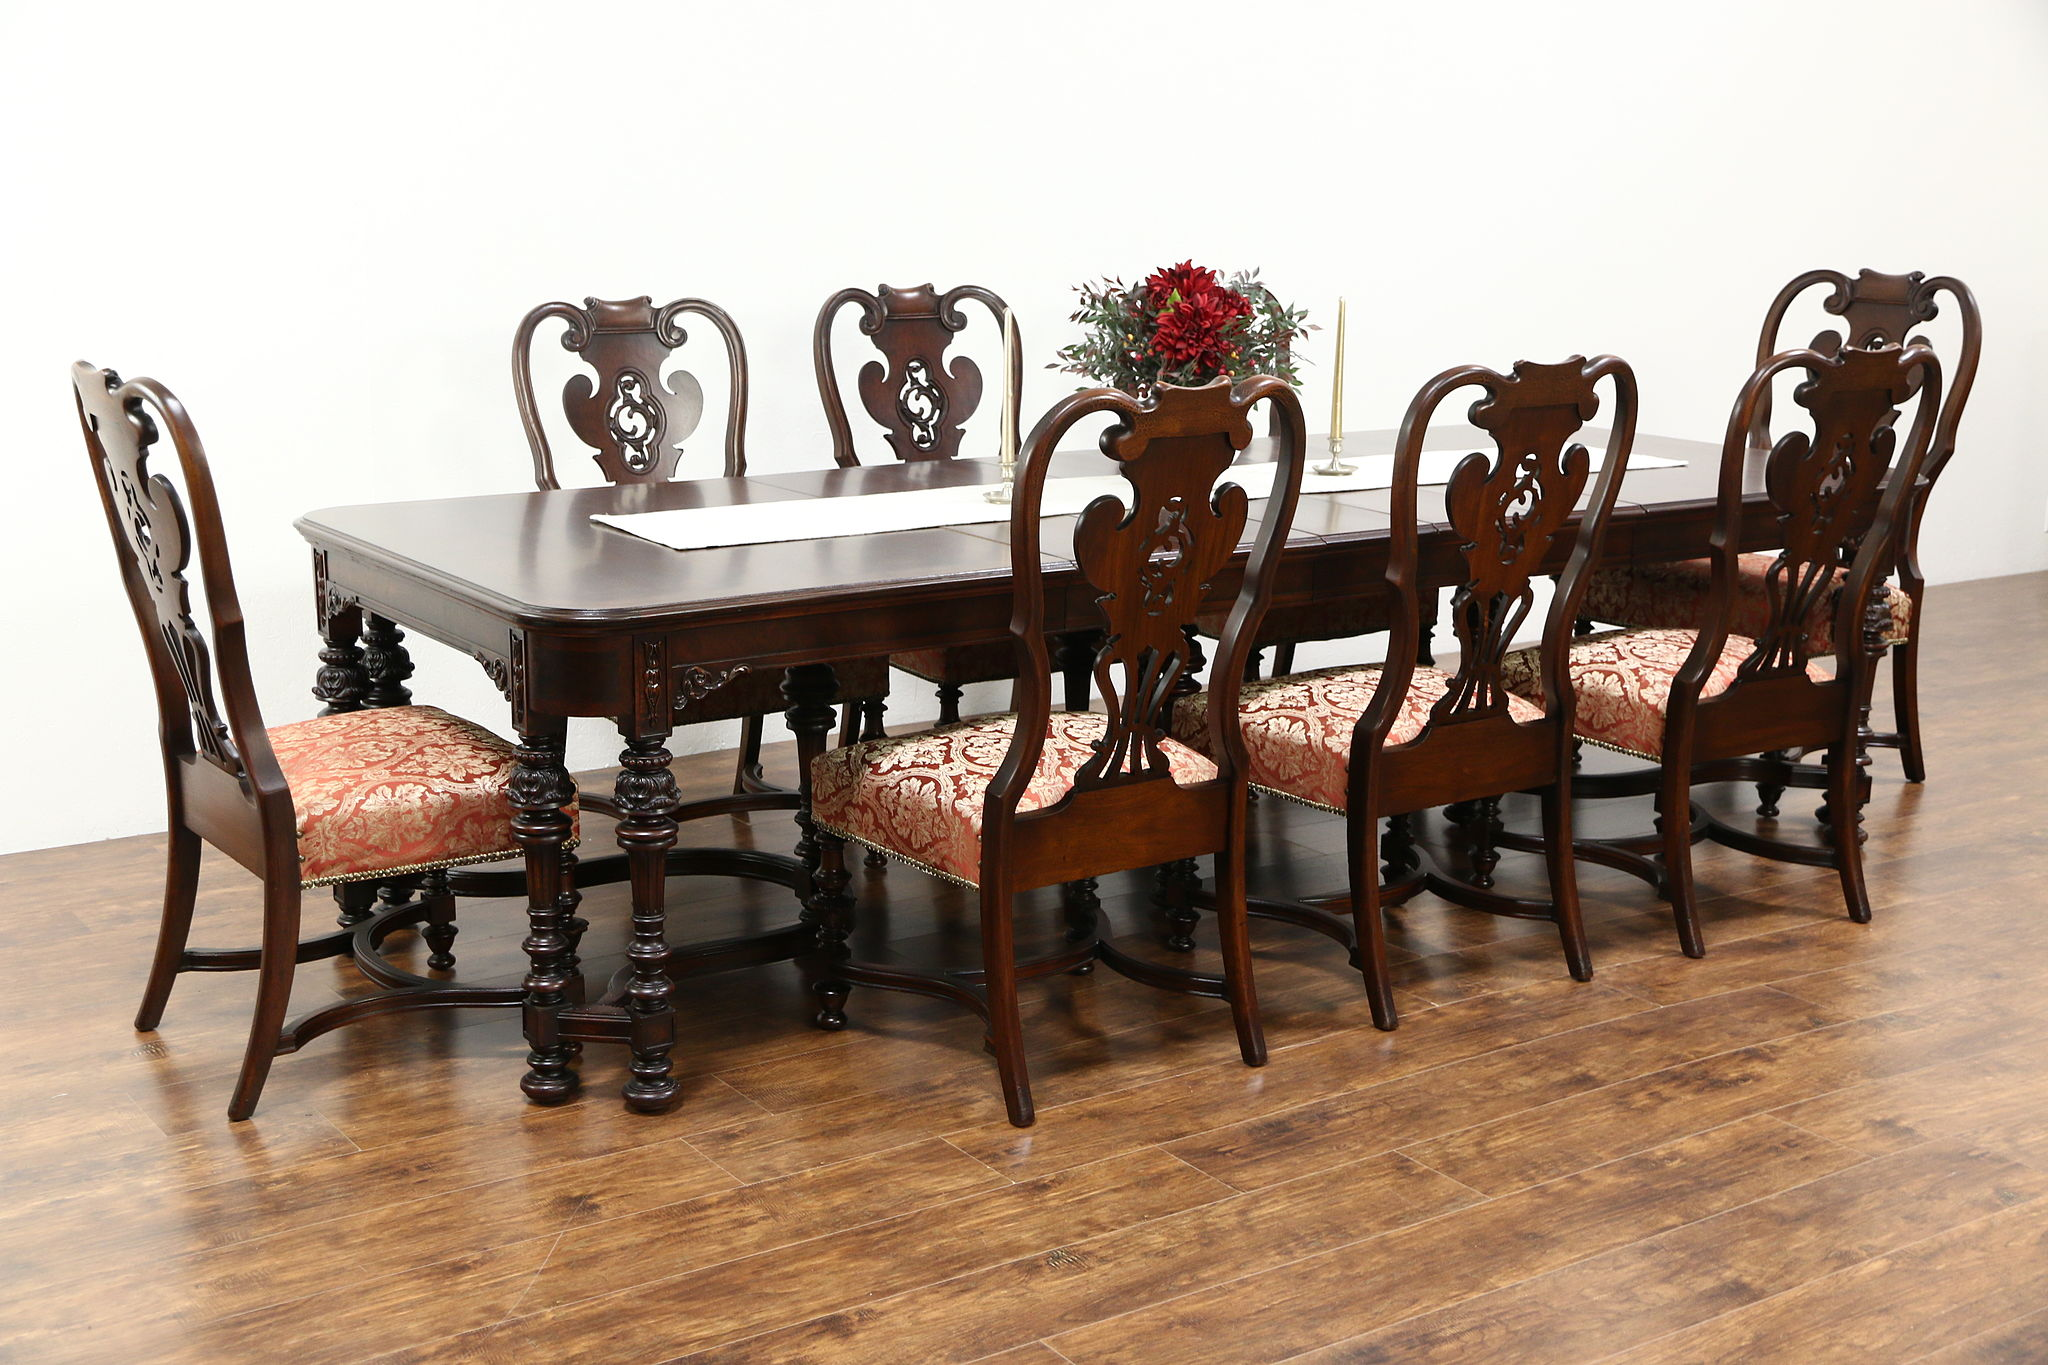 Carved Walnut U0026 Burl 1915 Antique Dining Set, Table U0026 8 Chairs Signed  Scholles